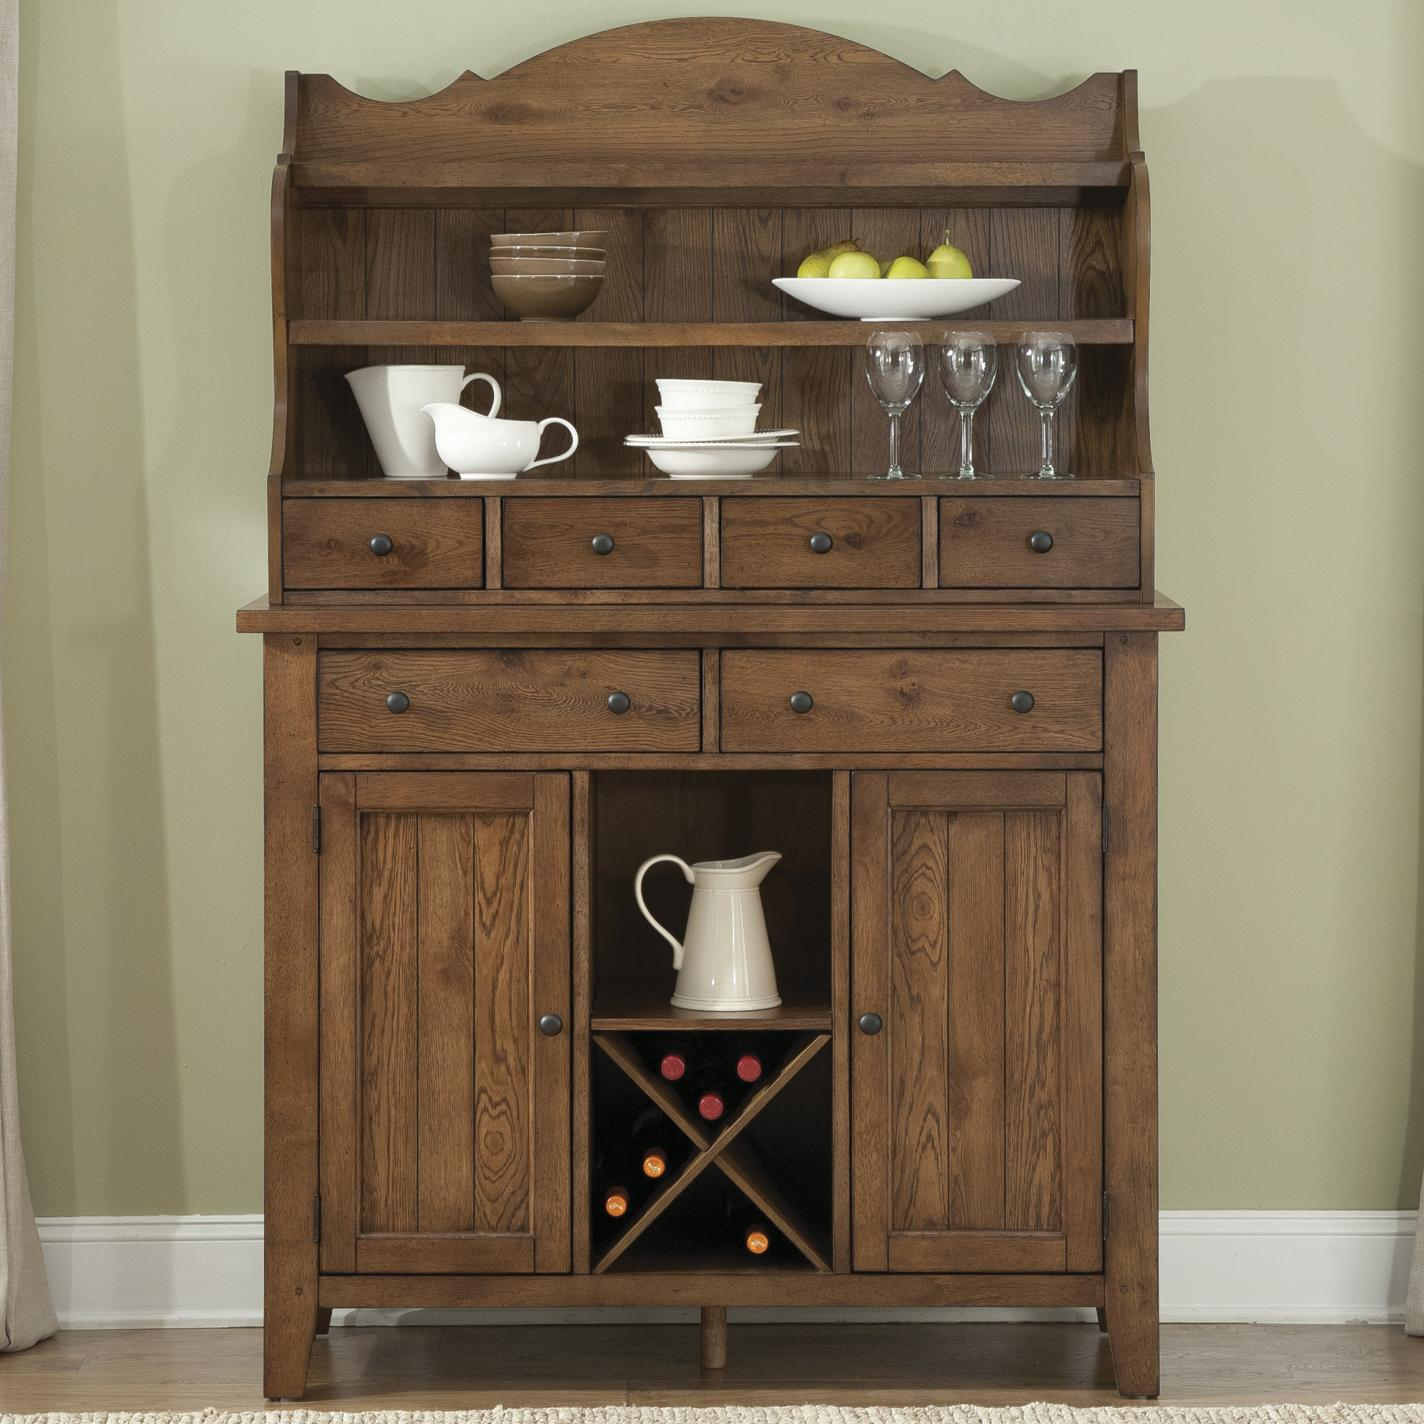 Hearthstone Server & Hutch by Liberty Furniture at Lapeer Furniture & Mattress Center